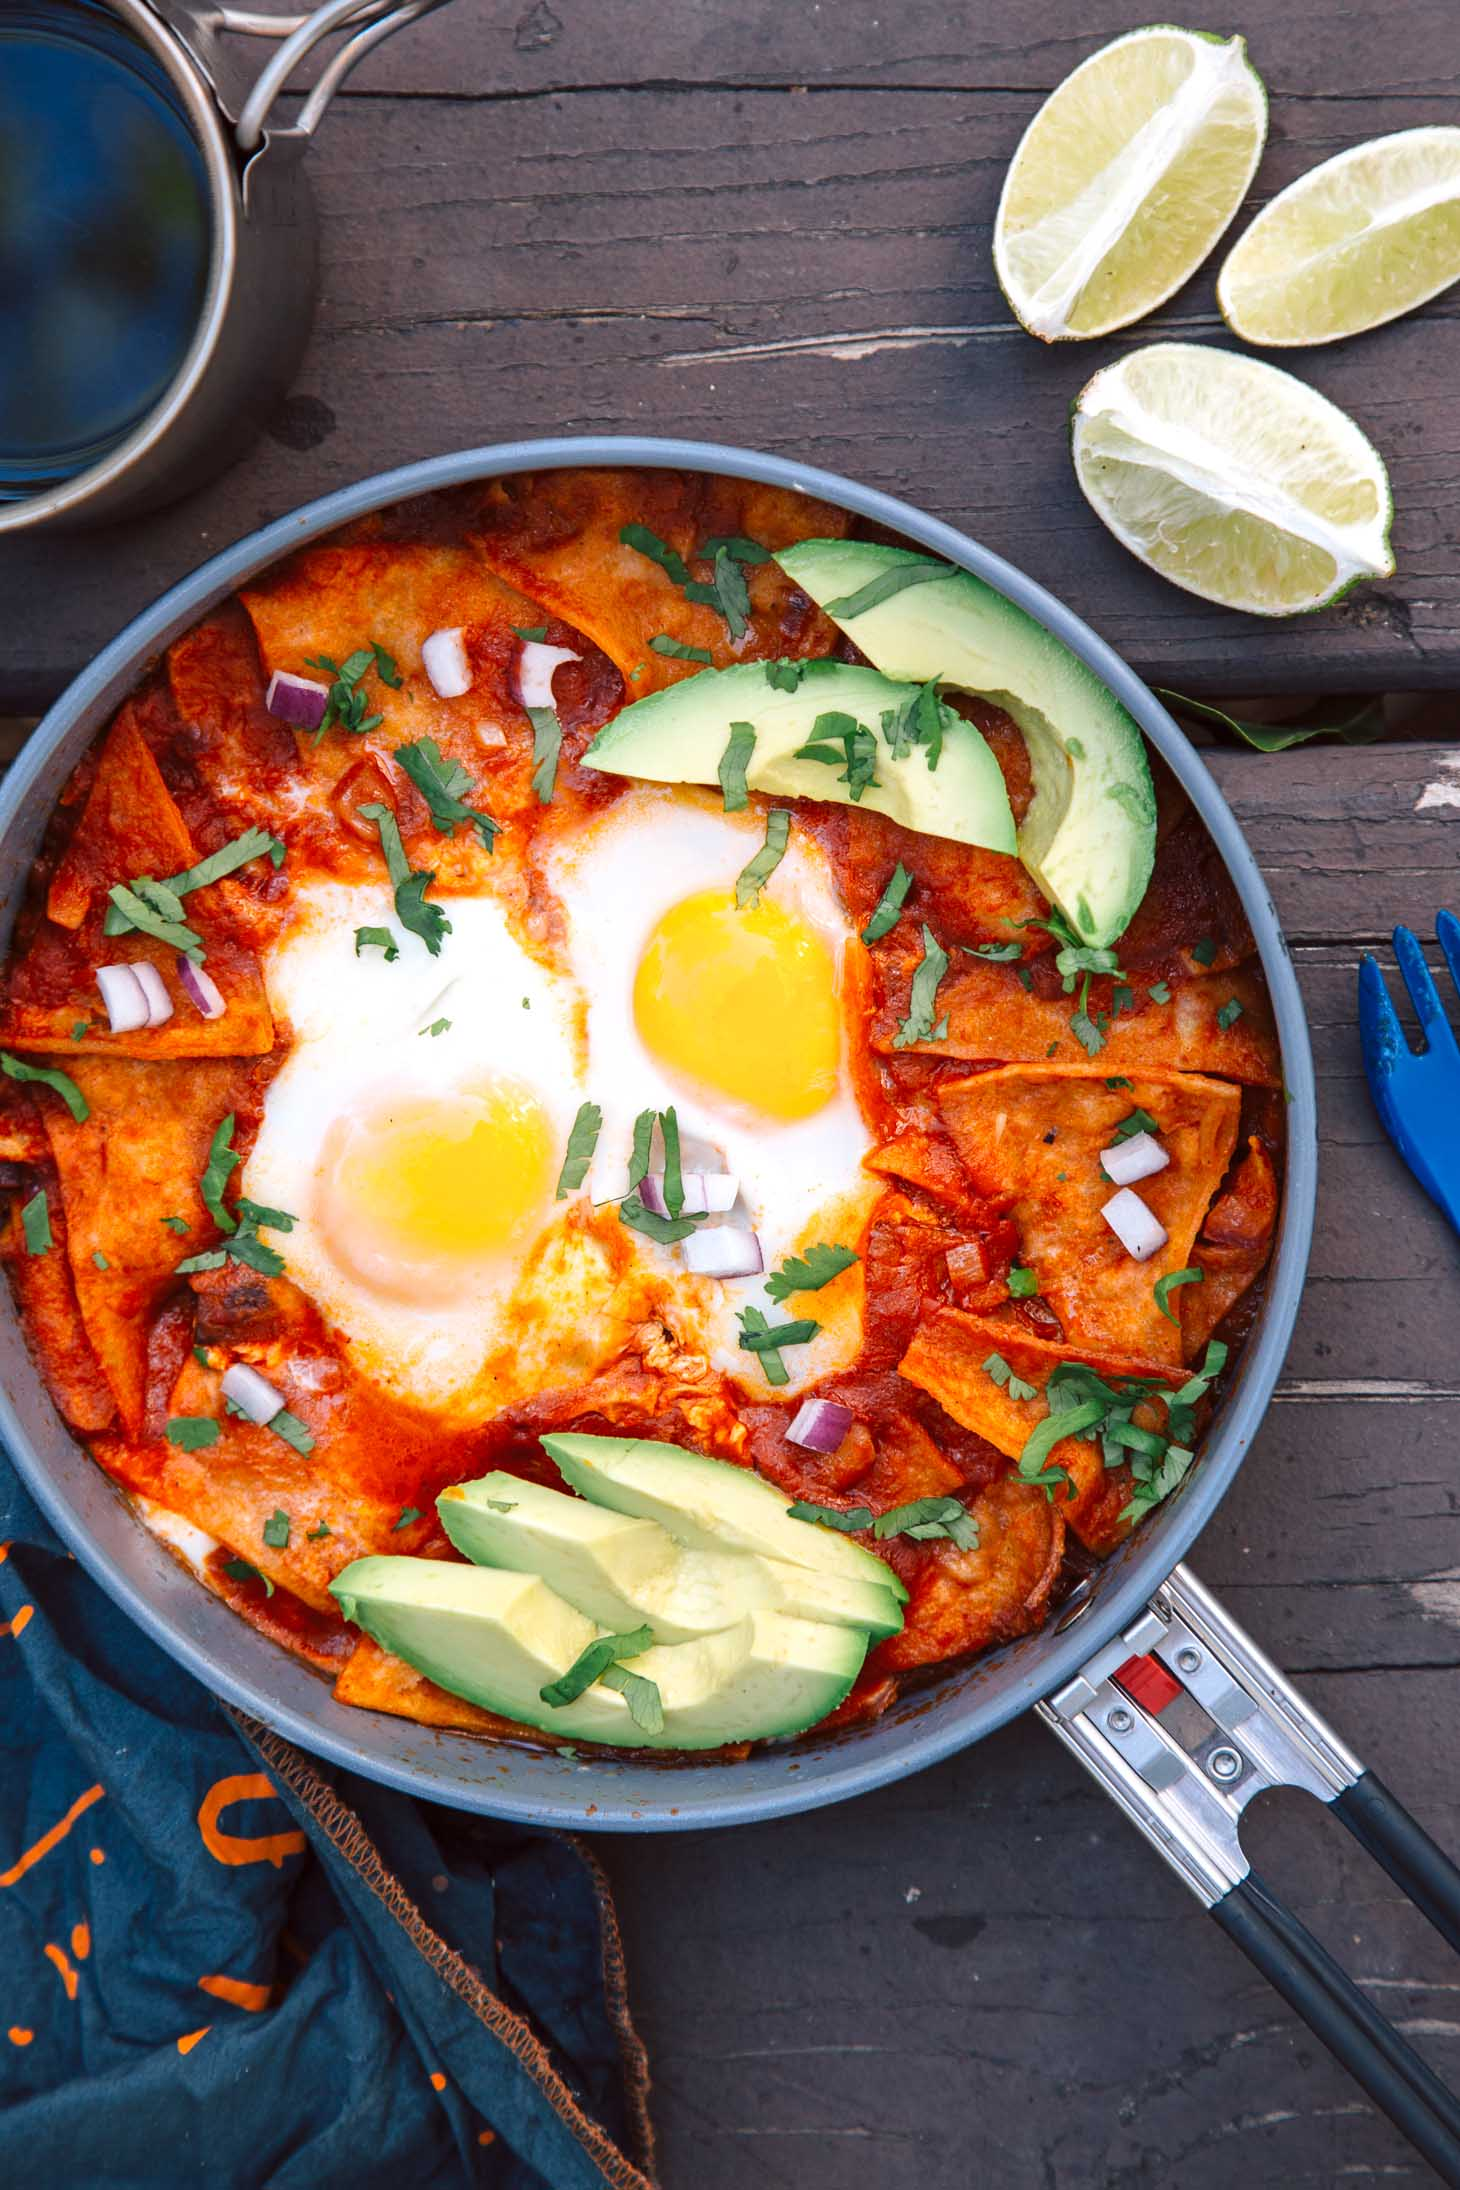 Chilaquiles is an easy camping breakfast idea - crispy tortillas simmered in a spicy tomato sauce and topped with eggs. It takes less than 30 minutes to make, and it's vegetarian, too!